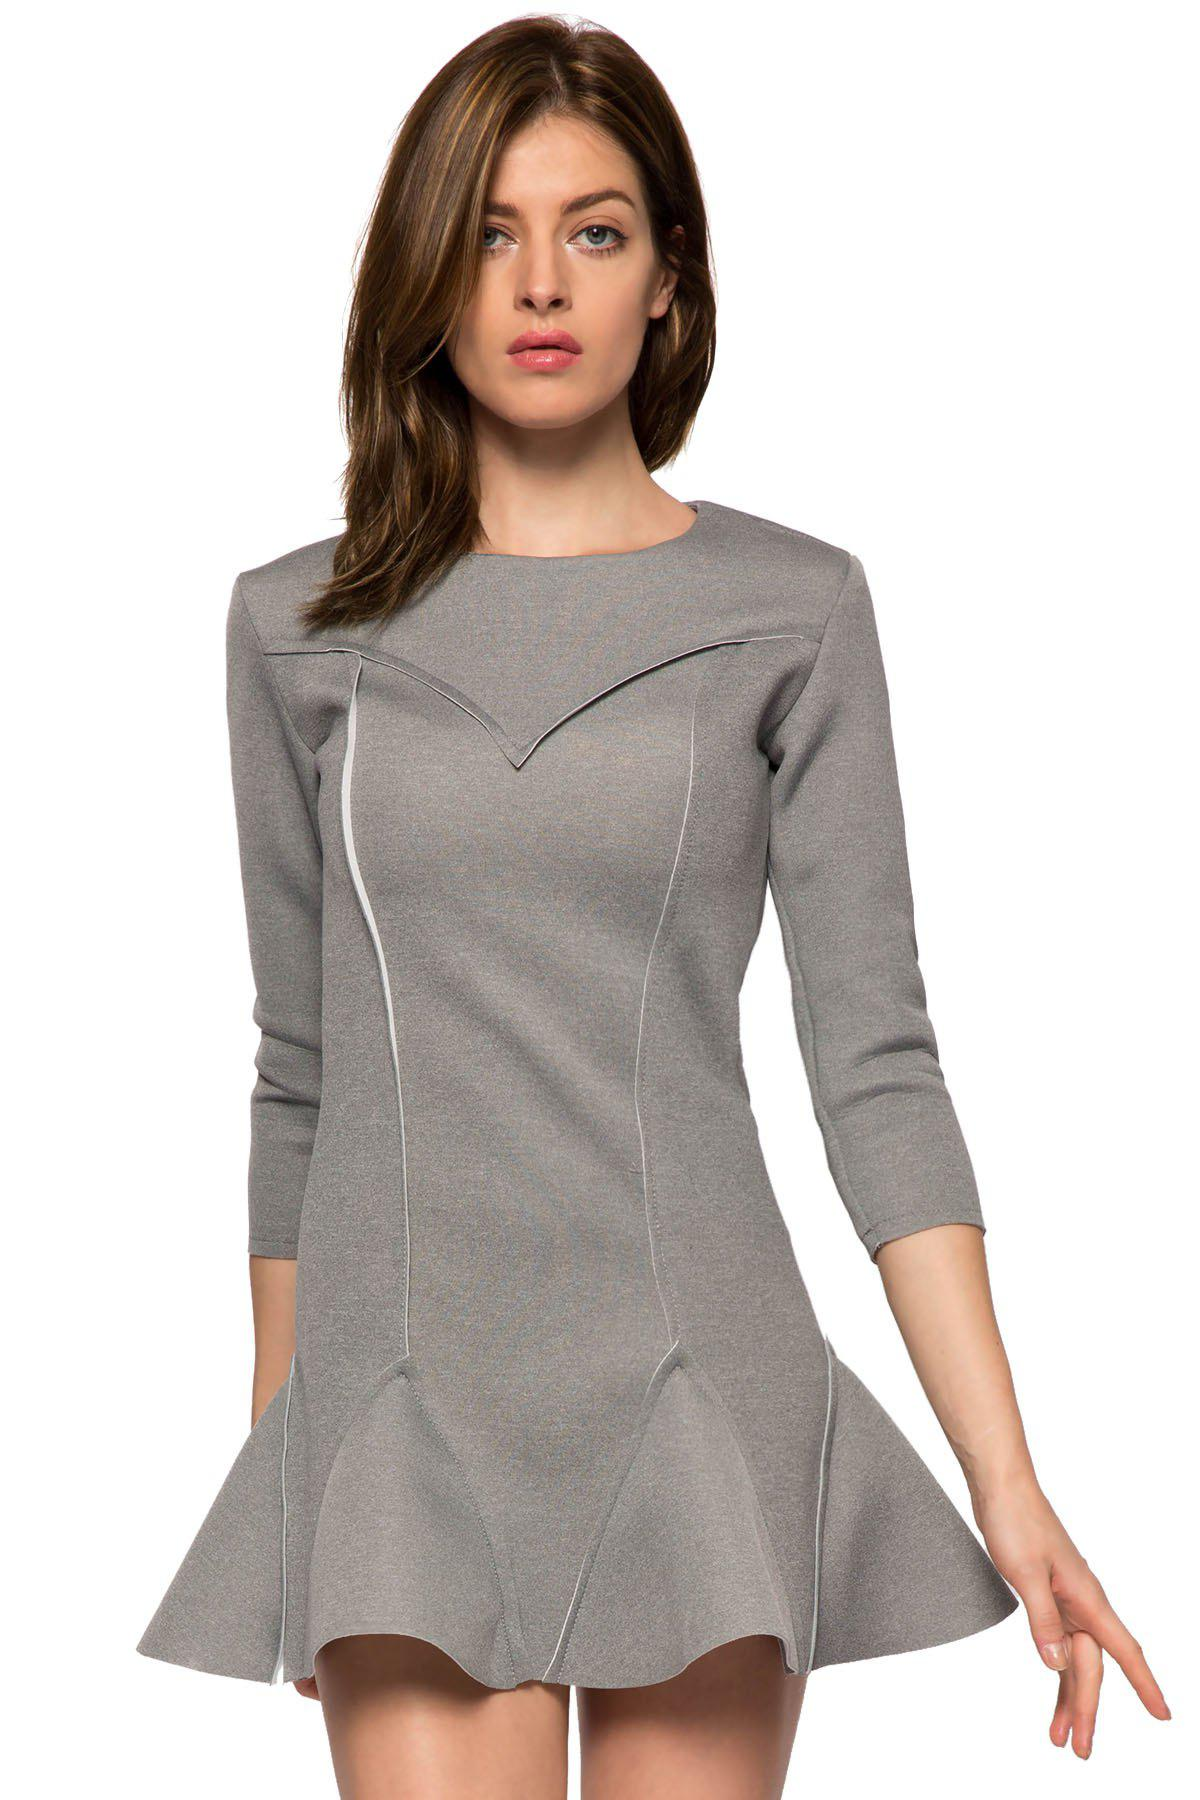 Online Trendy Style Round Collar 3/4 Sleeve Solid Color Ruffles Splicing Women's Dress